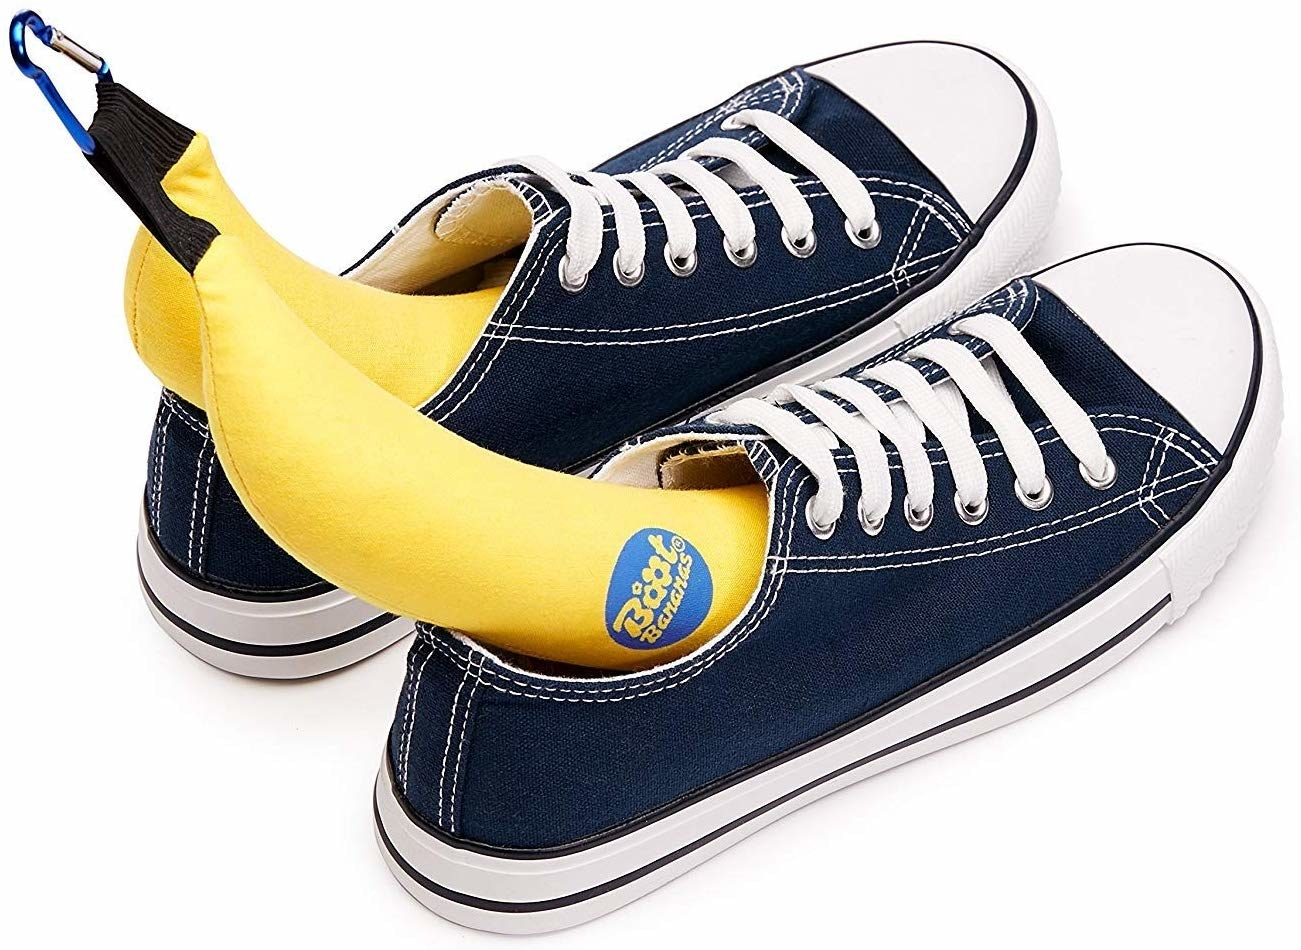 The bananas carabiner clipped together on top, each in one sneaker